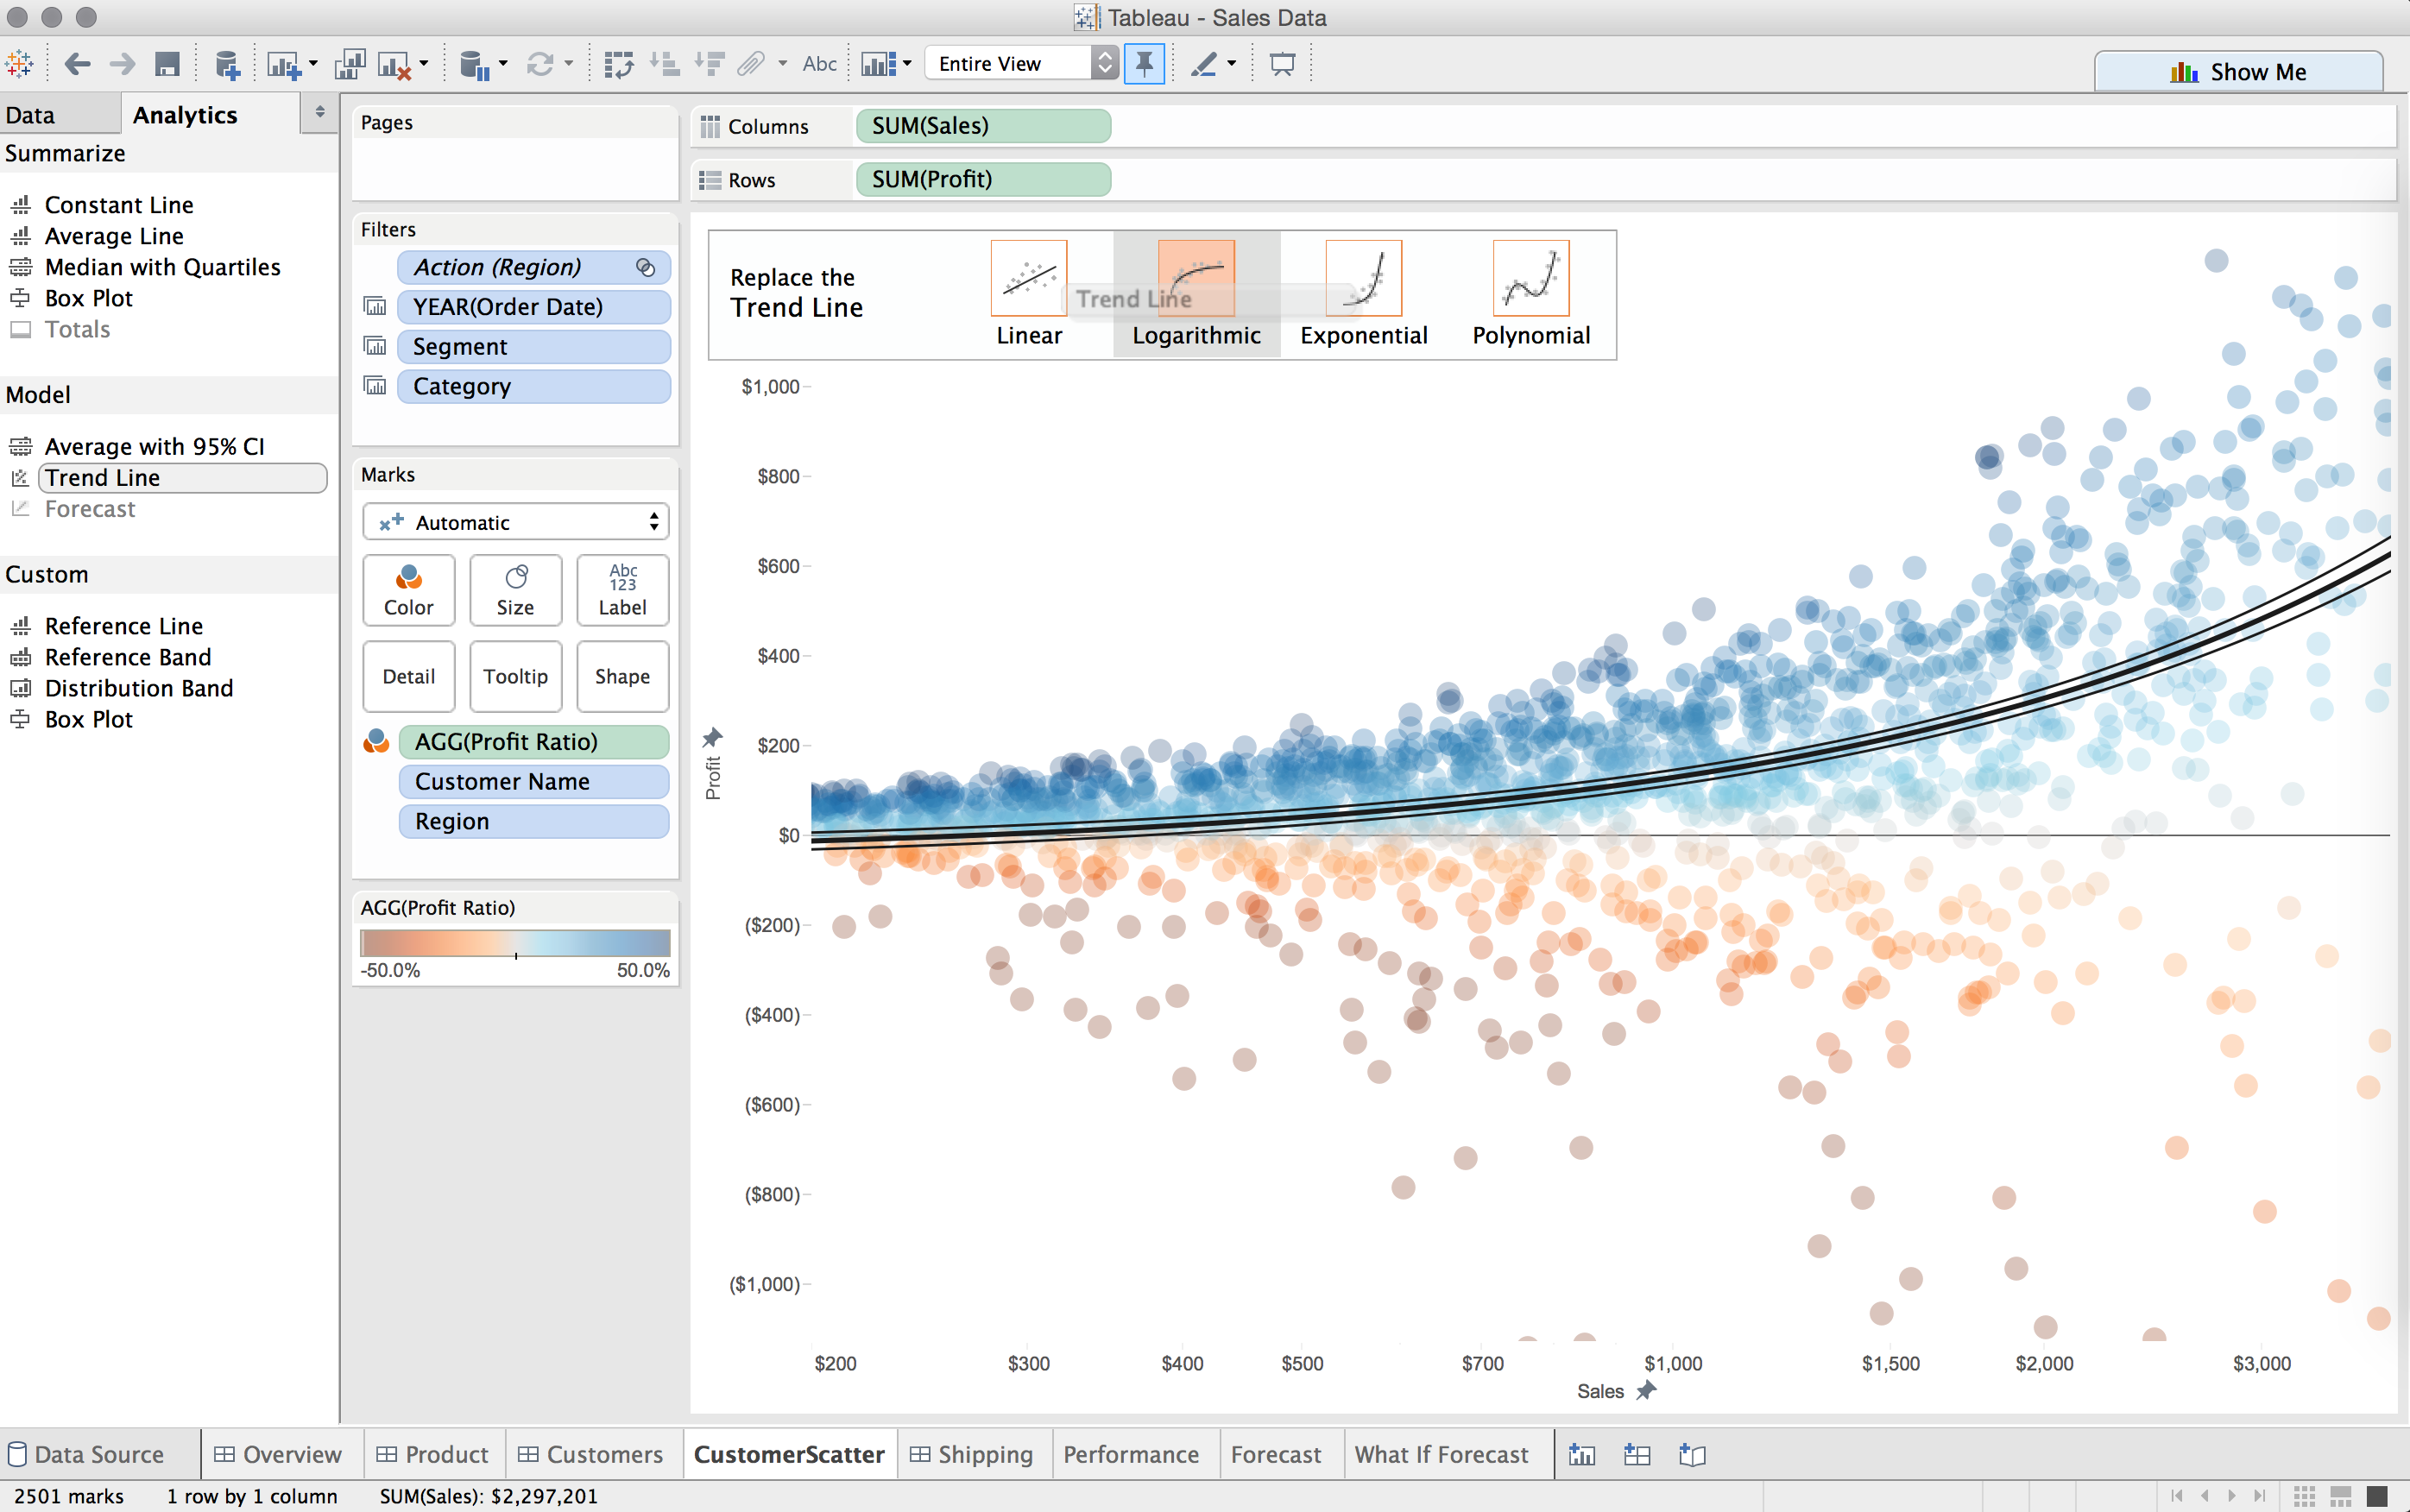 Tableau drag and drop analytics